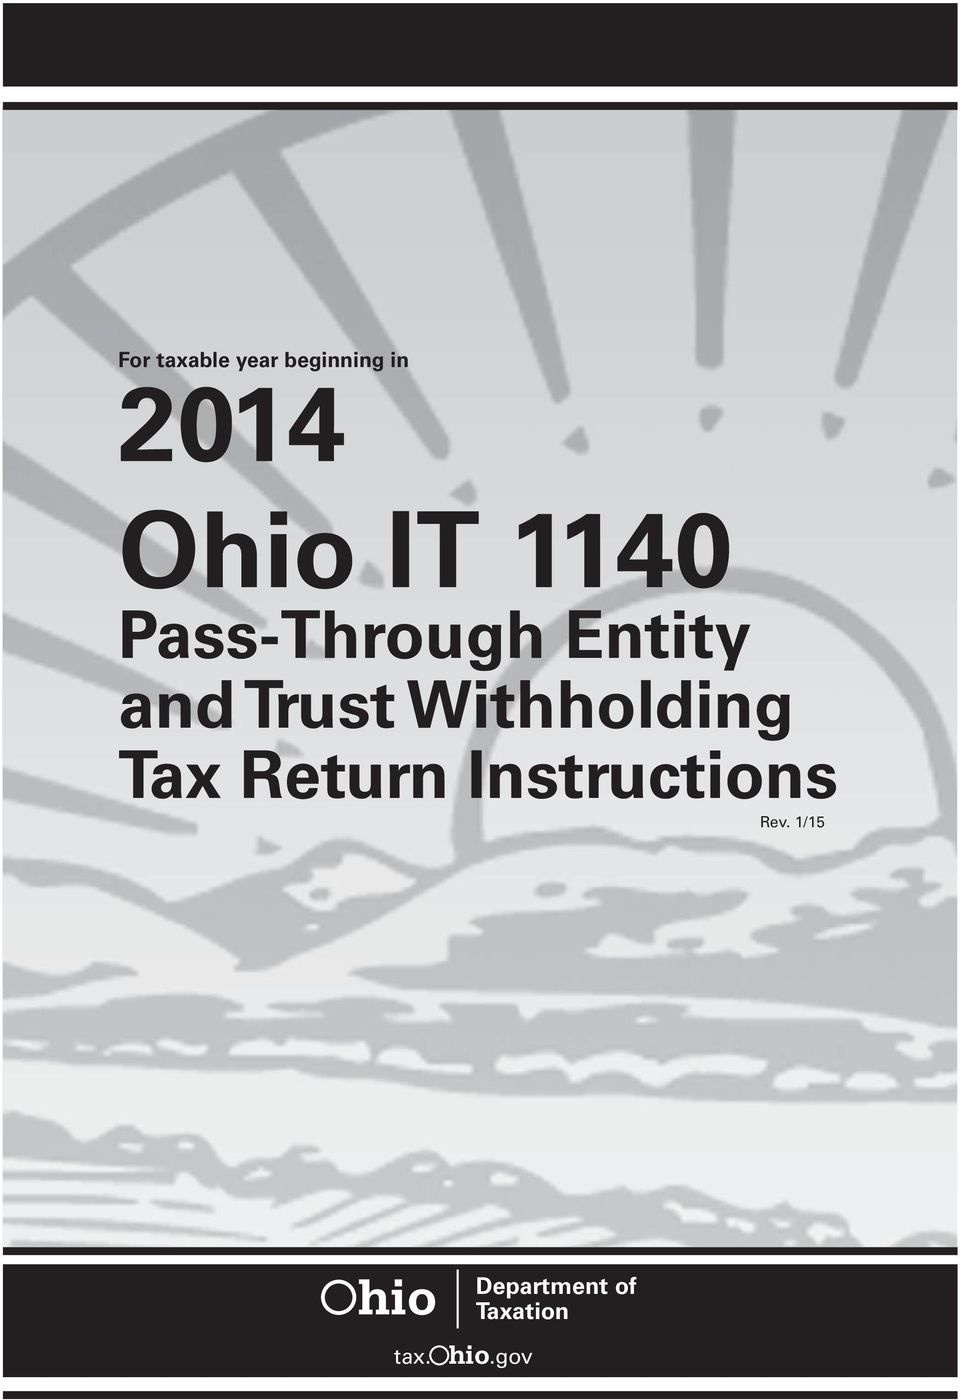 Trust Withholding Tax Return